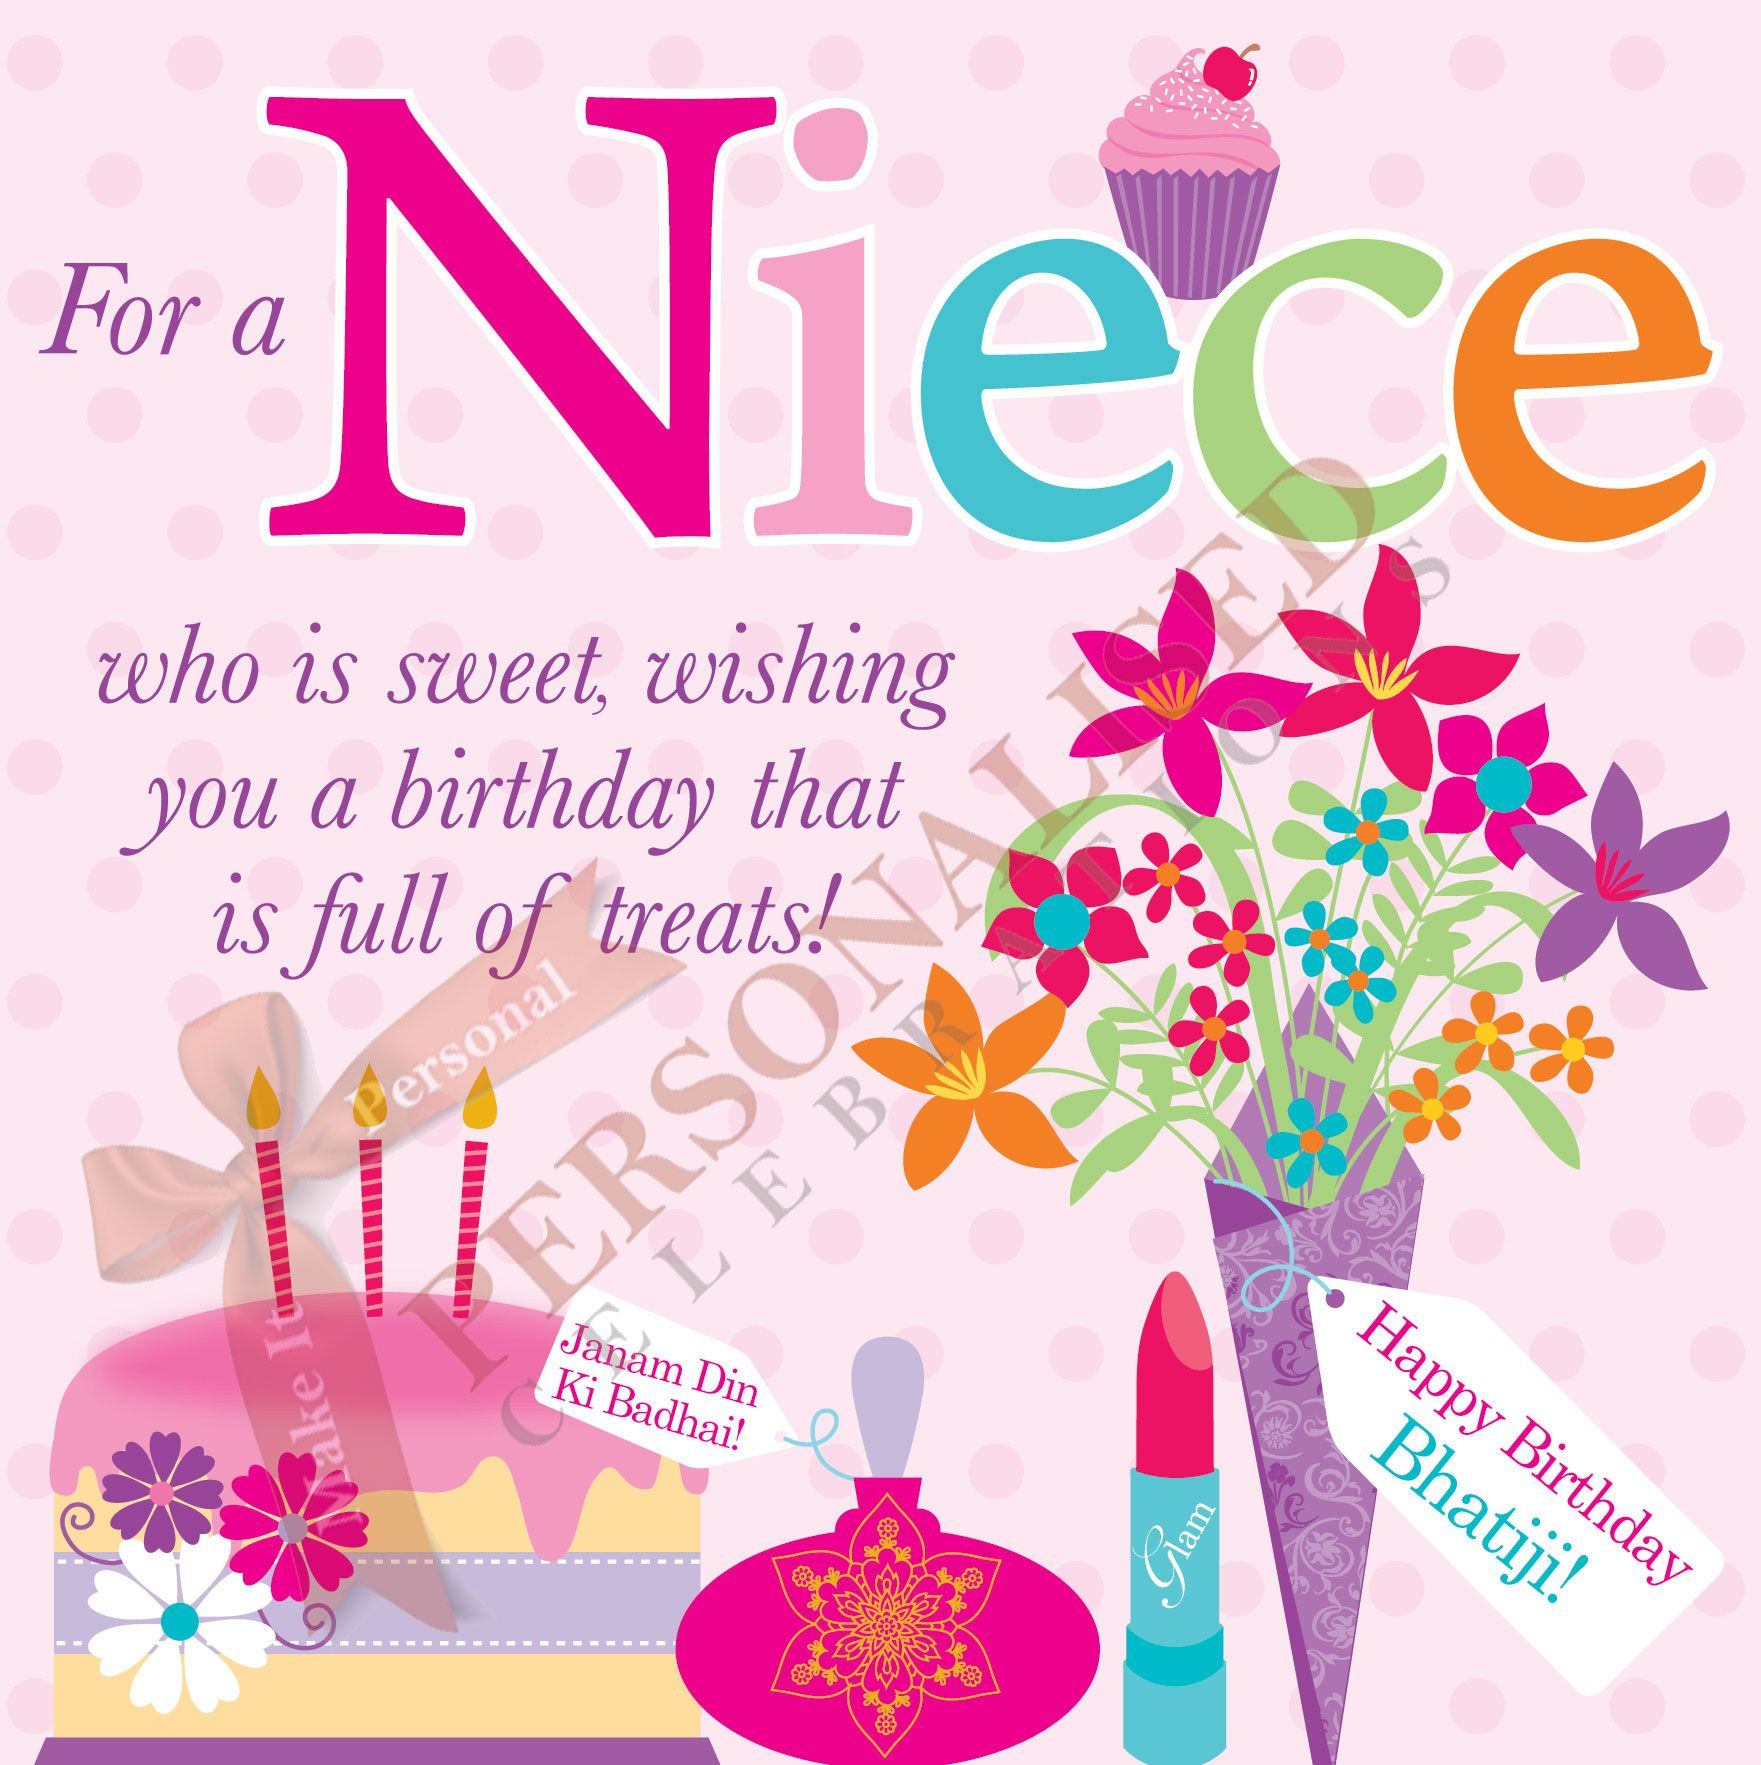 Niece Birthday Card Buy this card online only 199 at http – Birthday Card Buy Online